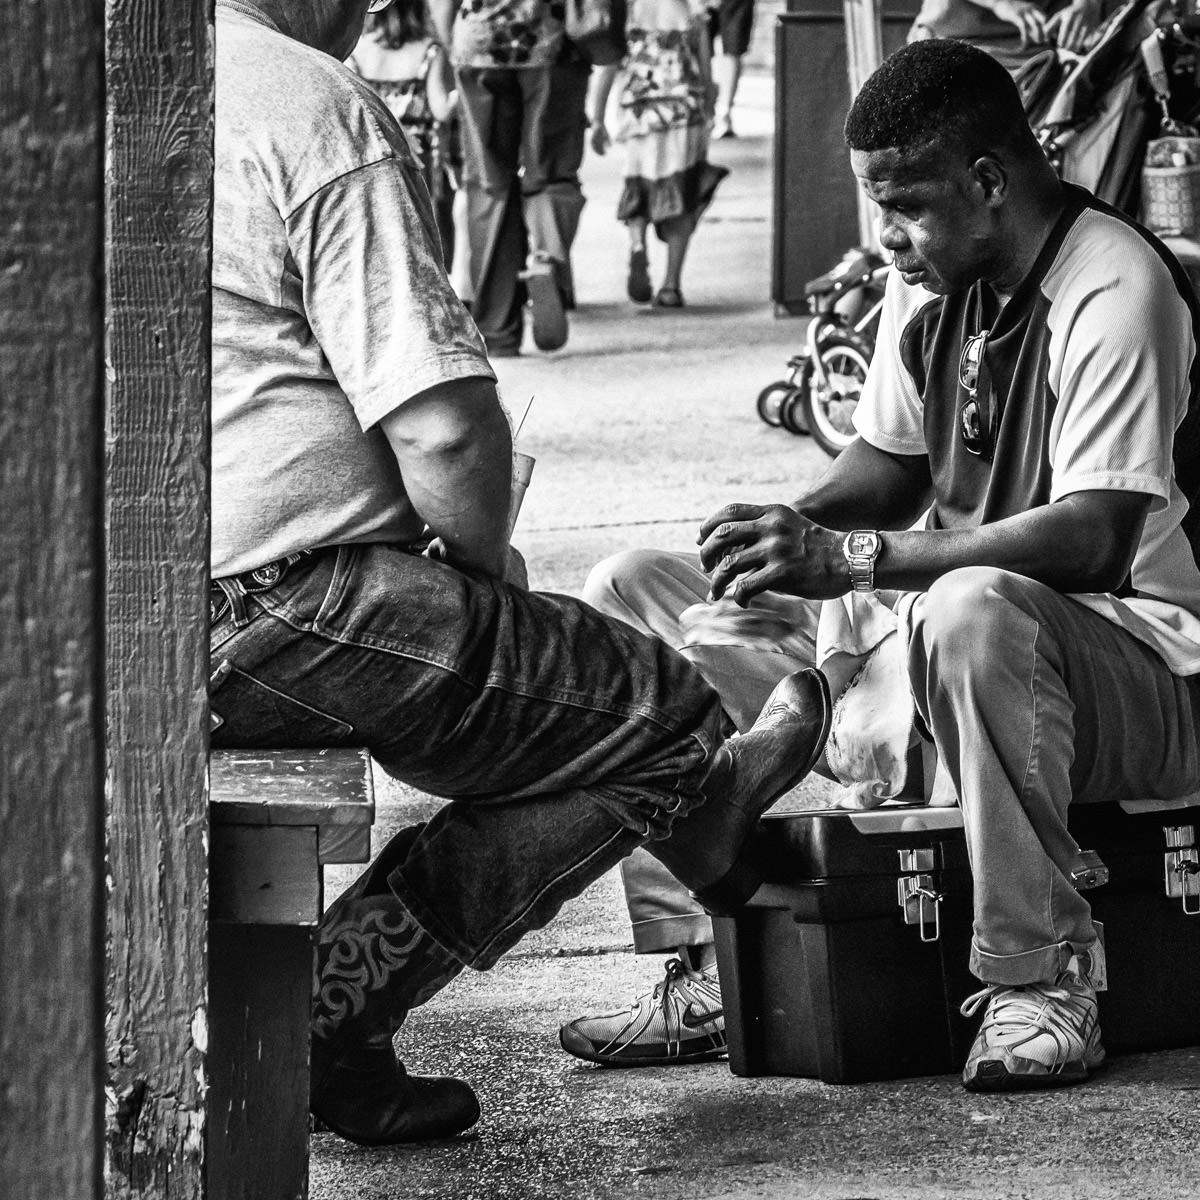 A tourist gets his boots shined at the Fort Worth Stockyards, Texas.